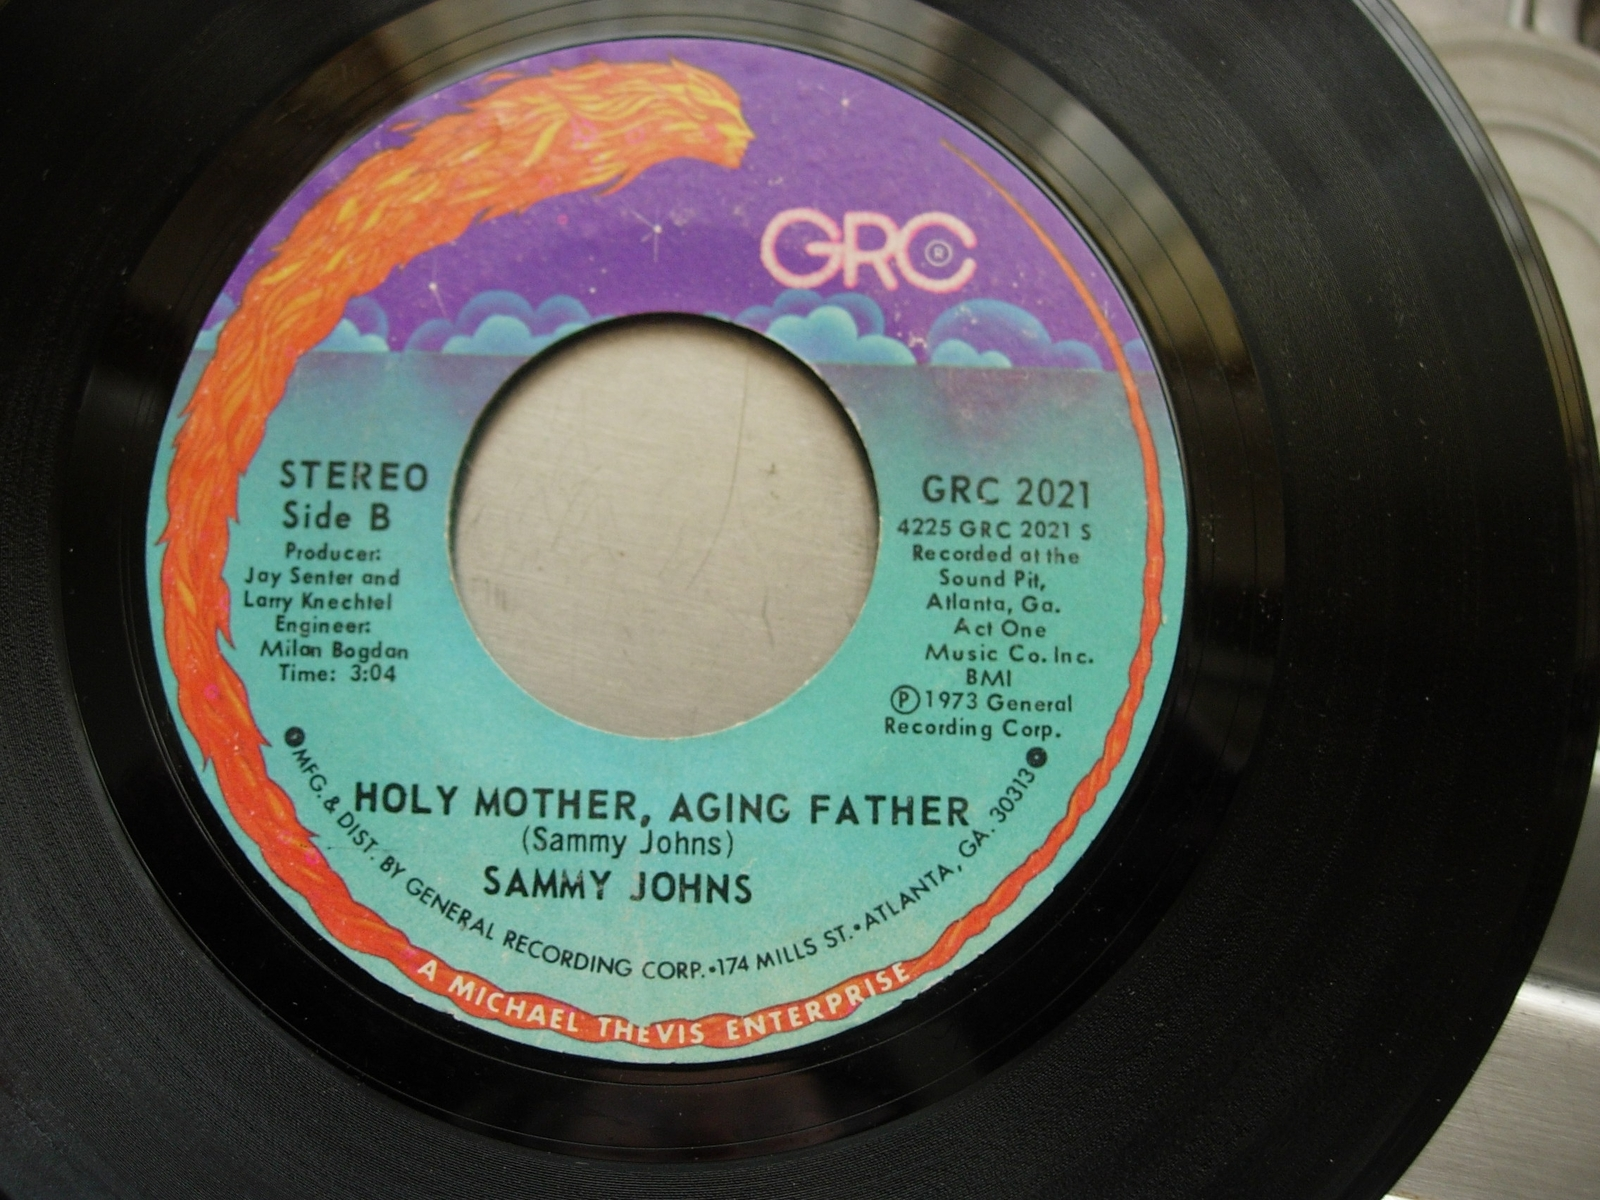 Sammy Johns - Early Morning Love / Holy Mother, Aging Father - GRC 2021